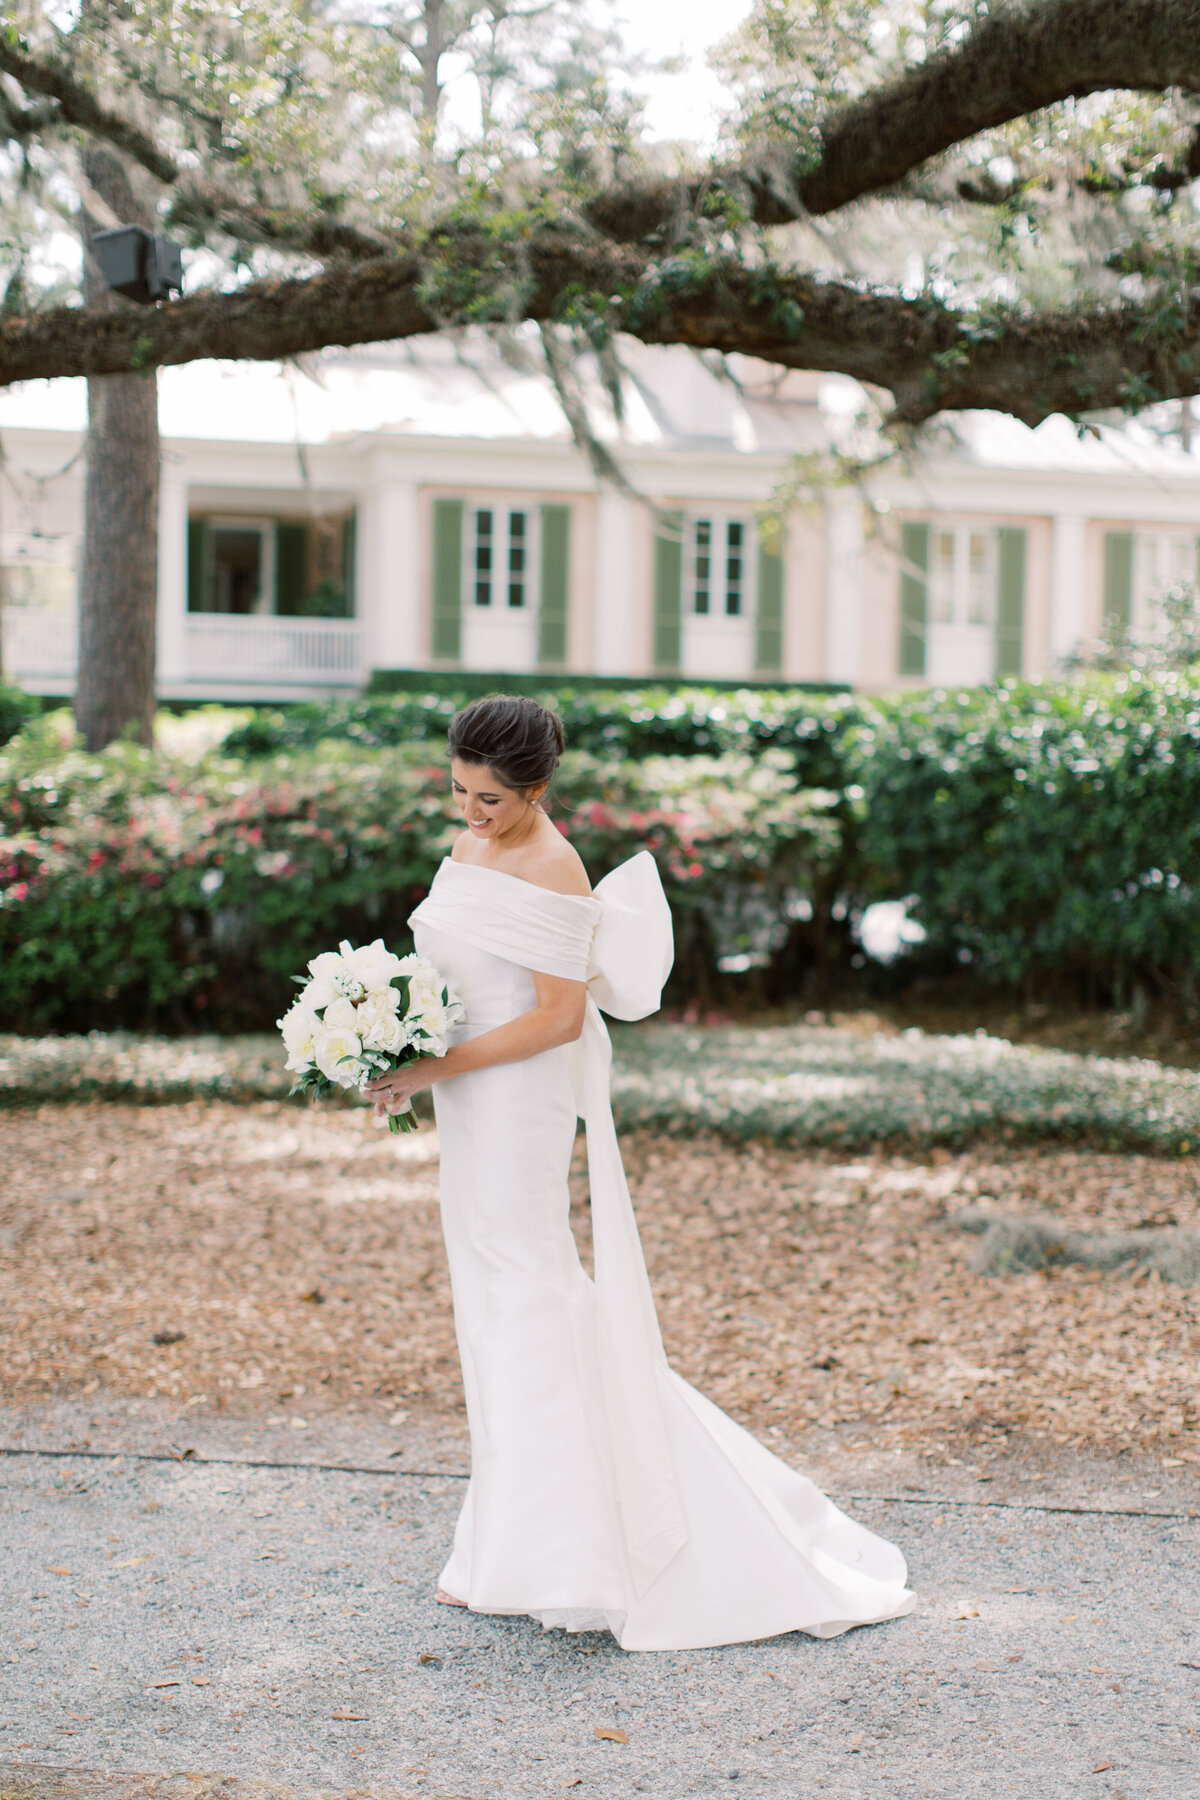 Powell_Oldfield_River_Club_Bluffton_South_Carolina_Beaufort_Savannah_Wedding_Jacksonville_Florida_Devon_Donnahoo_Photography_0189